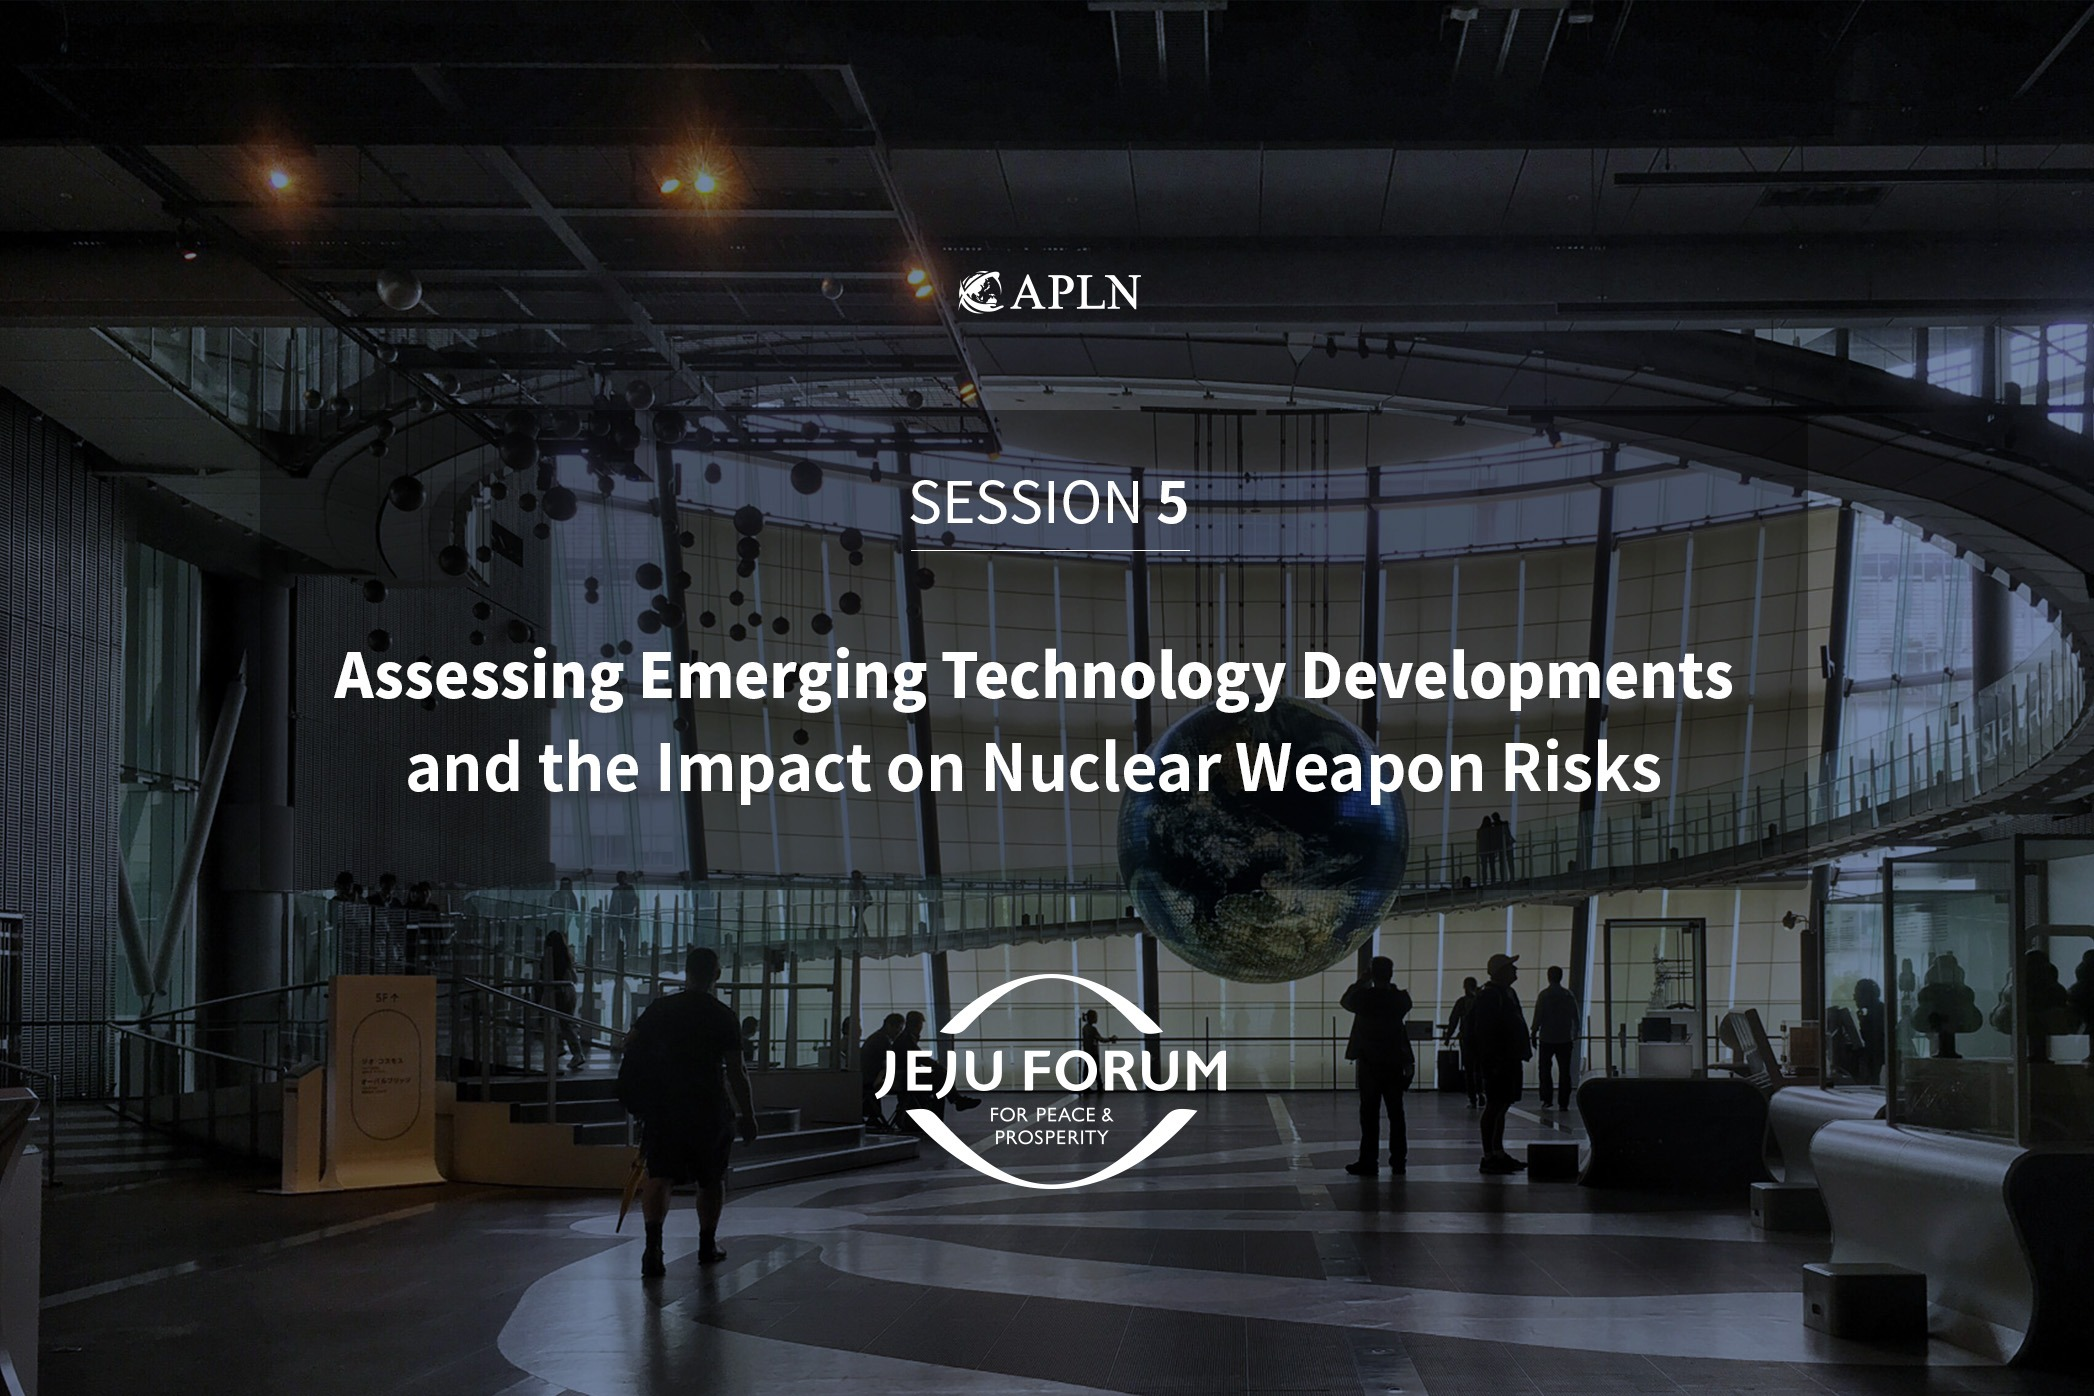 Assessing Emerging Technology Developments and the Impact on Nuclear Weapon Risks